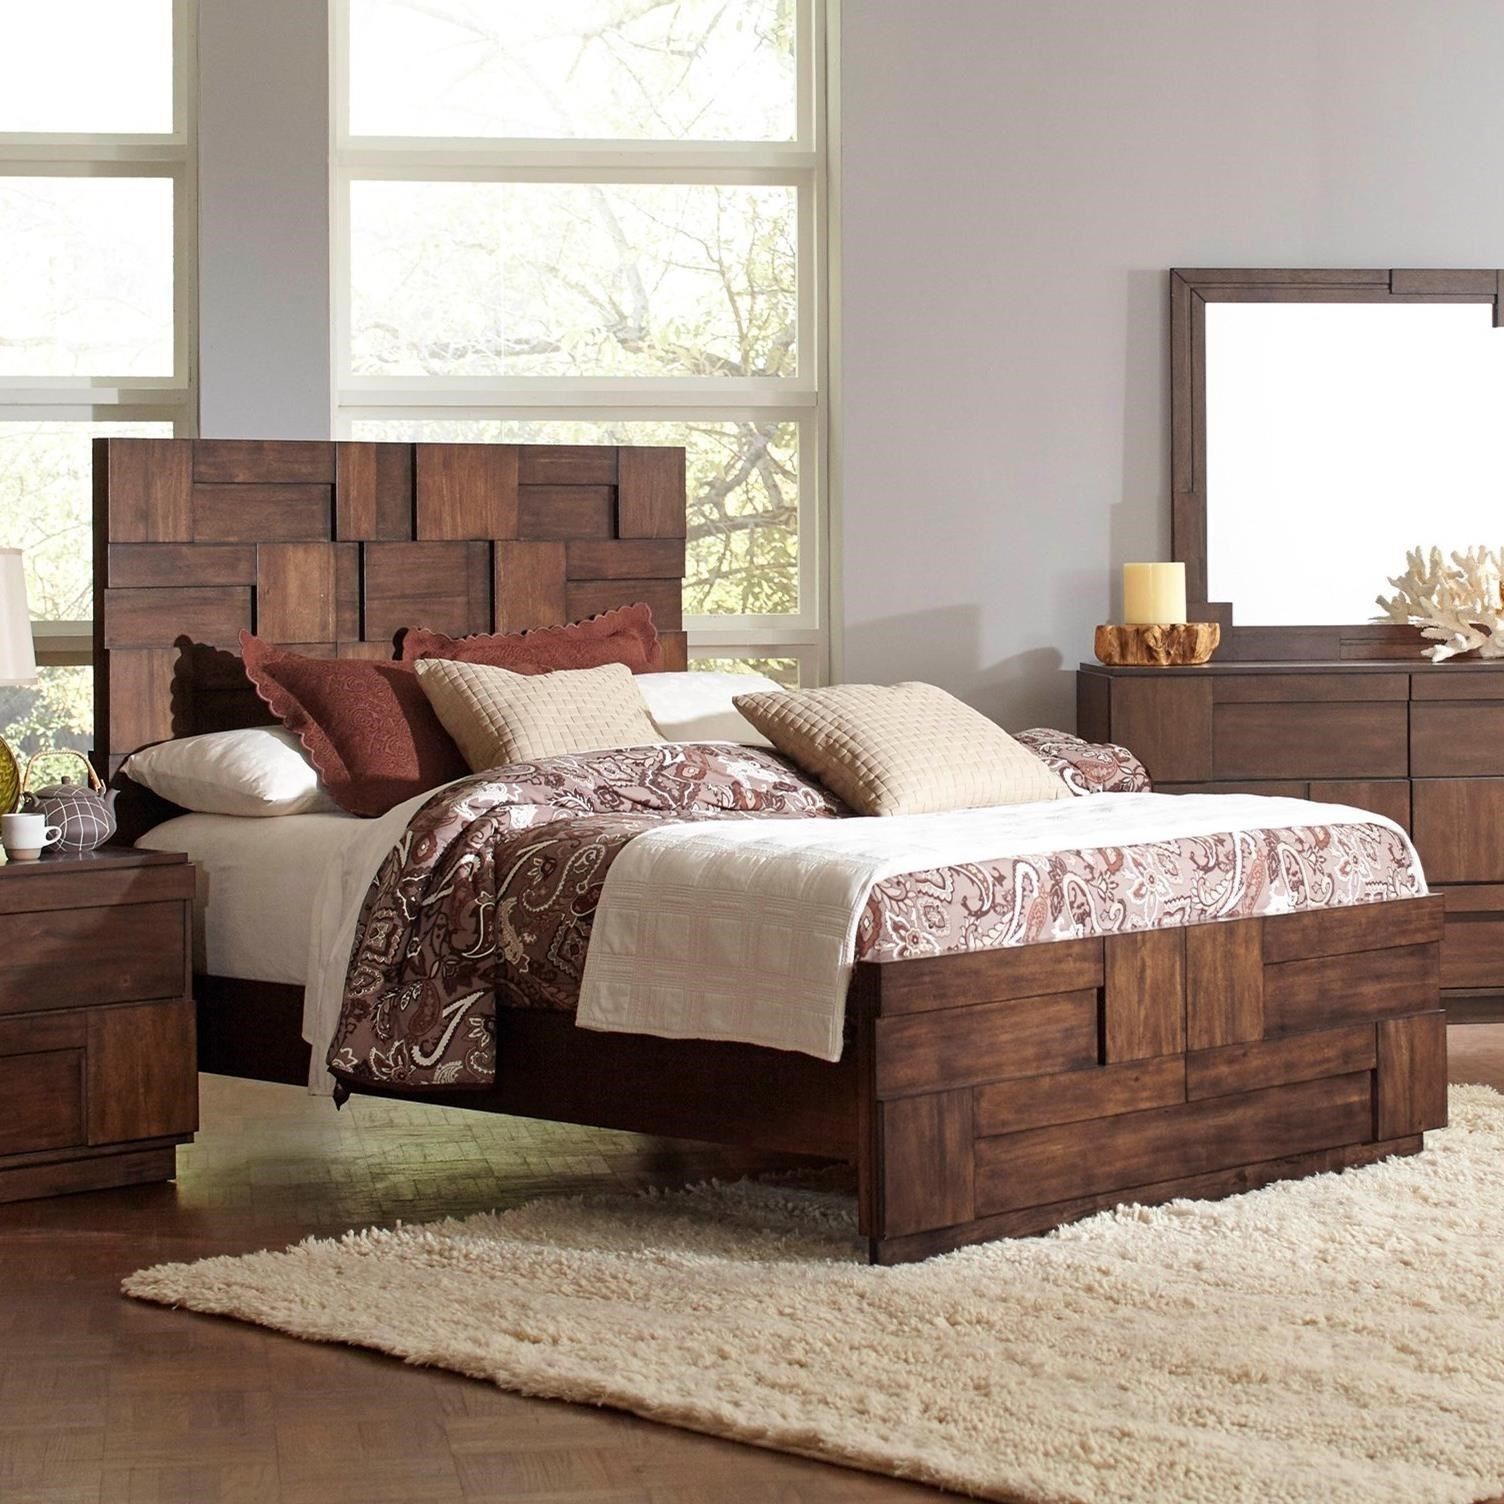 Queen 4 pc set, gallagher (bed, dresser, nightstand, mirror)